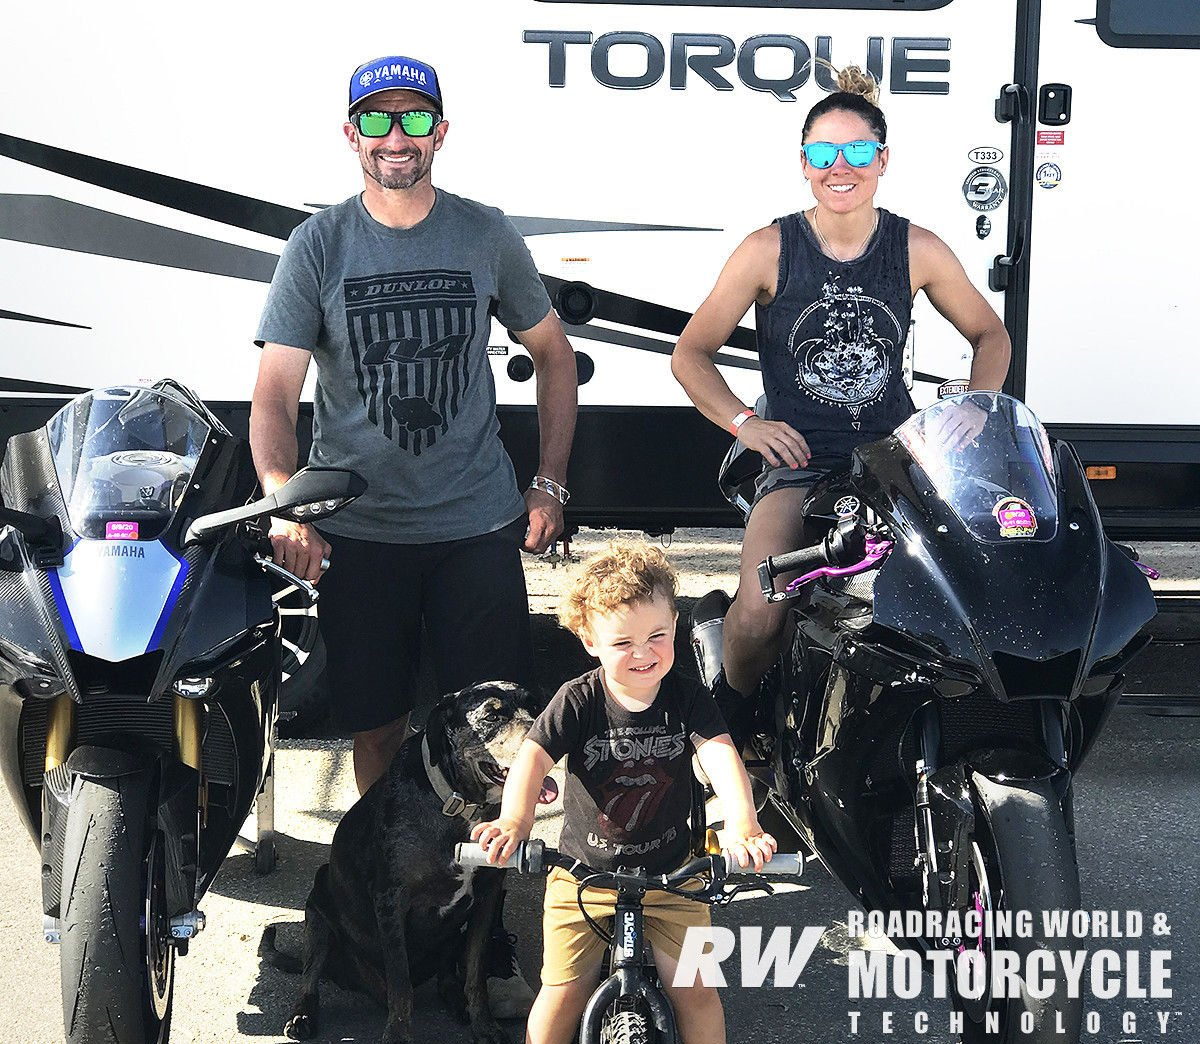 Josh Hayes, Melissa Paris and their two-year-old son Hawk are having family fun adventures and racetrack outings in their 39-foot Torque TQ T333 by Heartland toy-hauler/travel trailer.